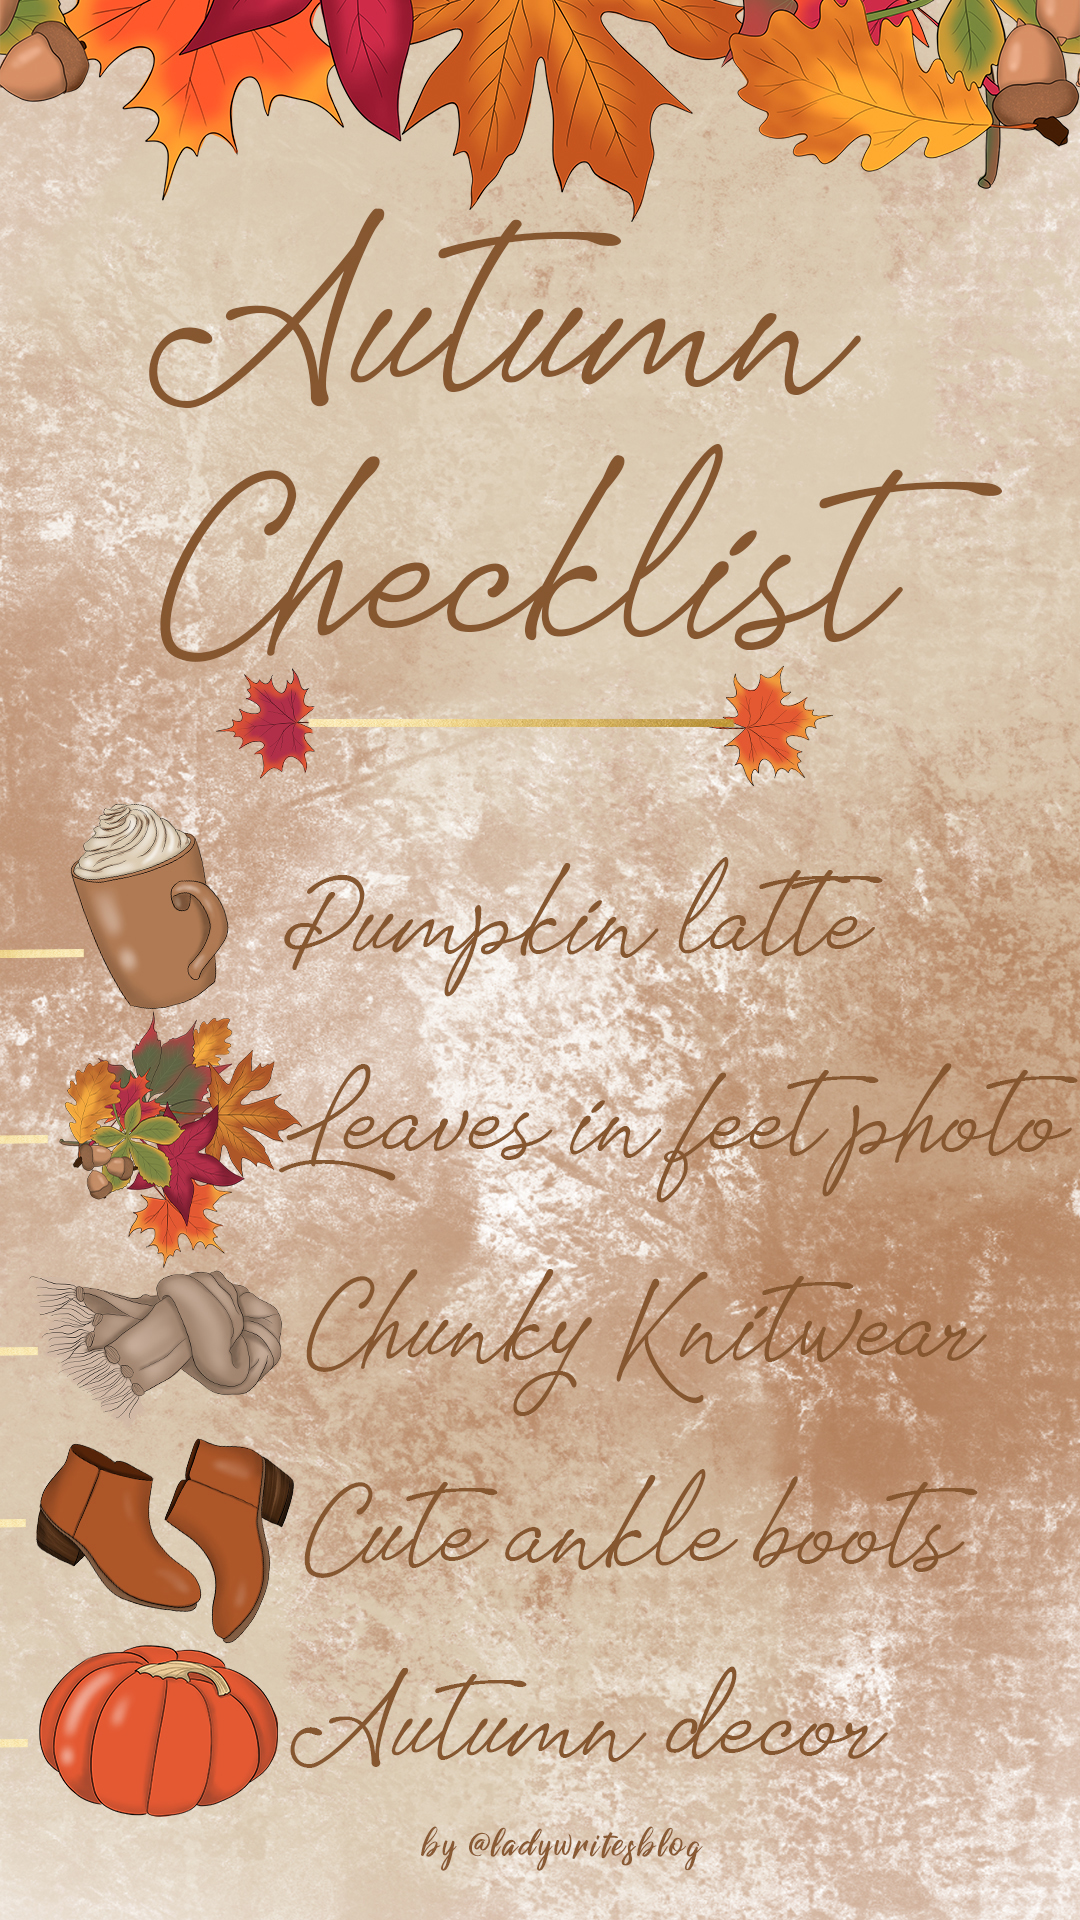 Free Autumn checklist wallpaper